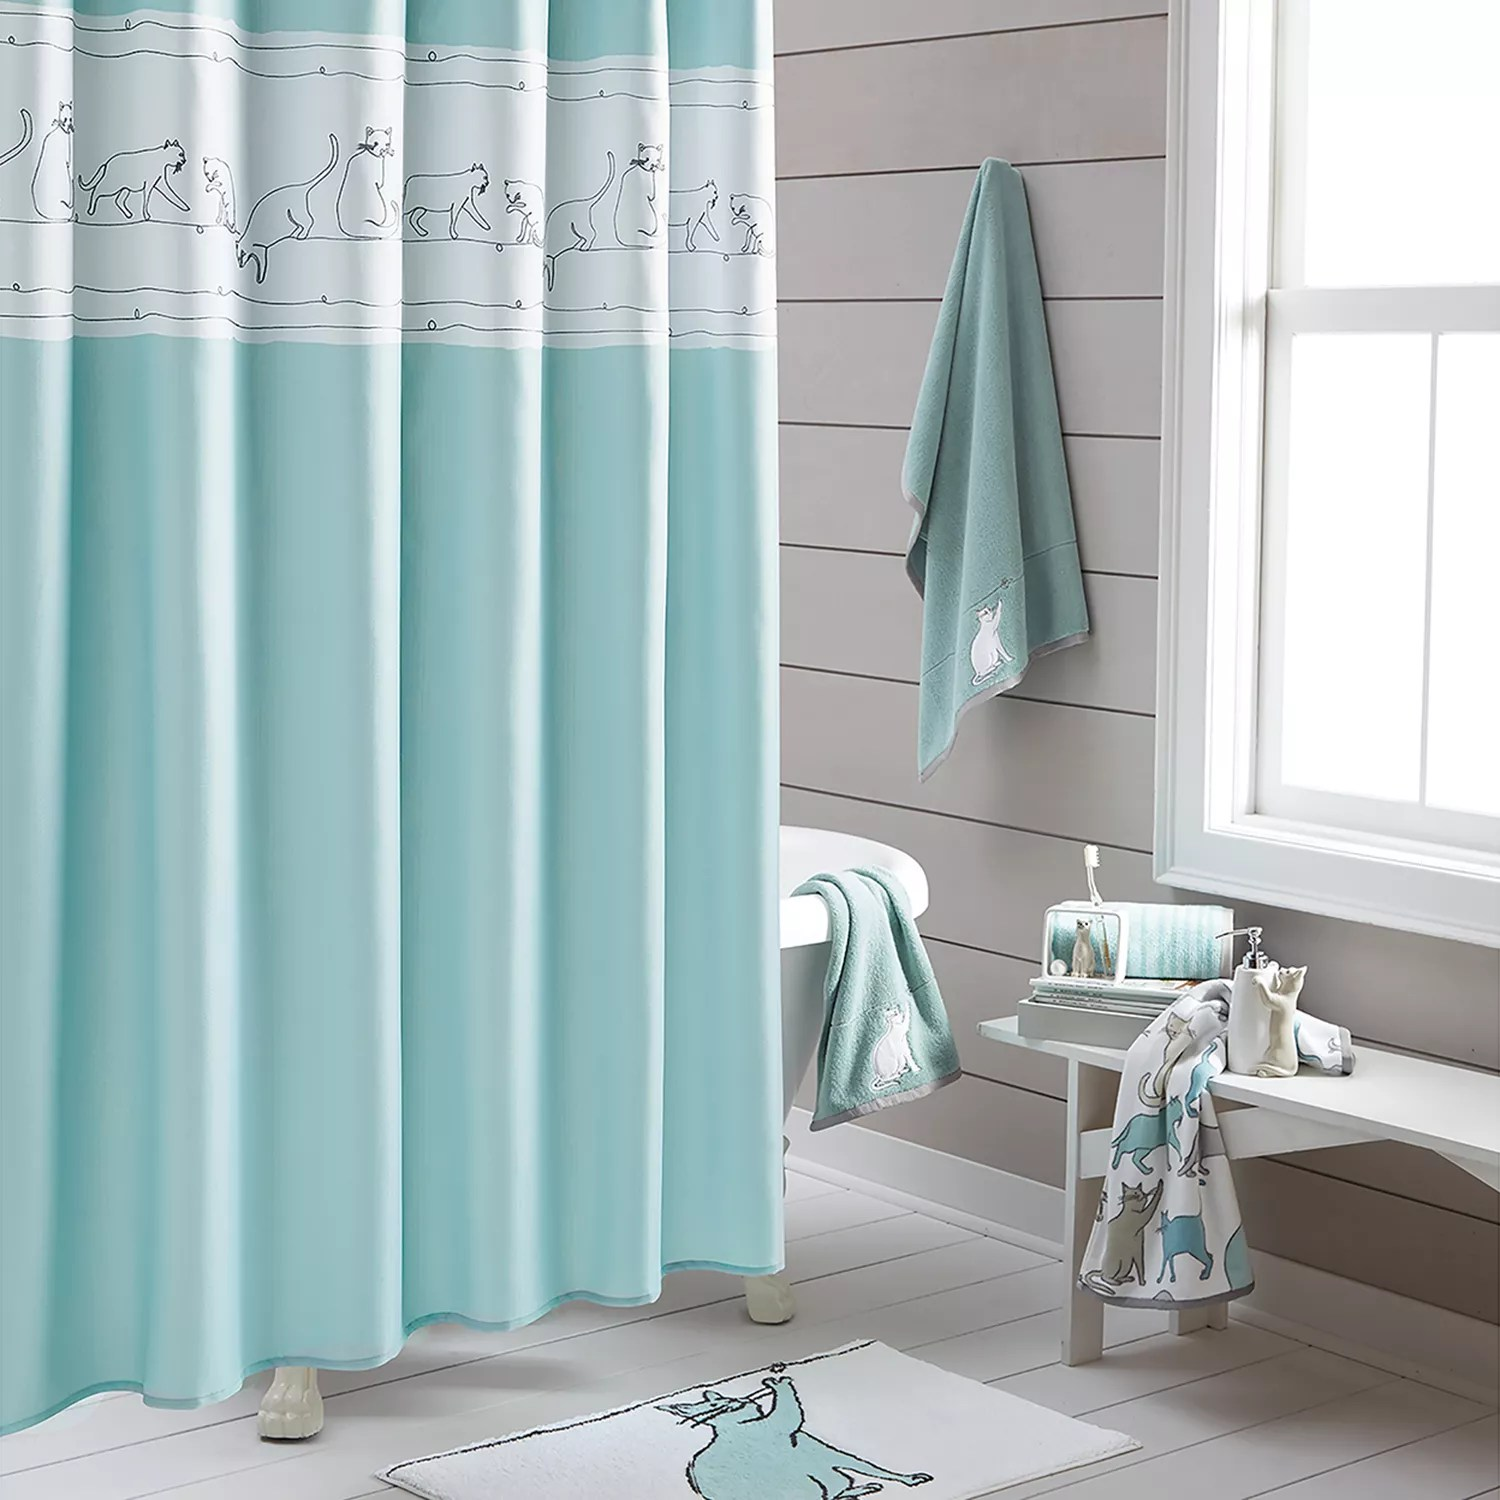 Kohls Com Shower Curtains One Home Embroidered Kitty Cat Shower Curtain Collection